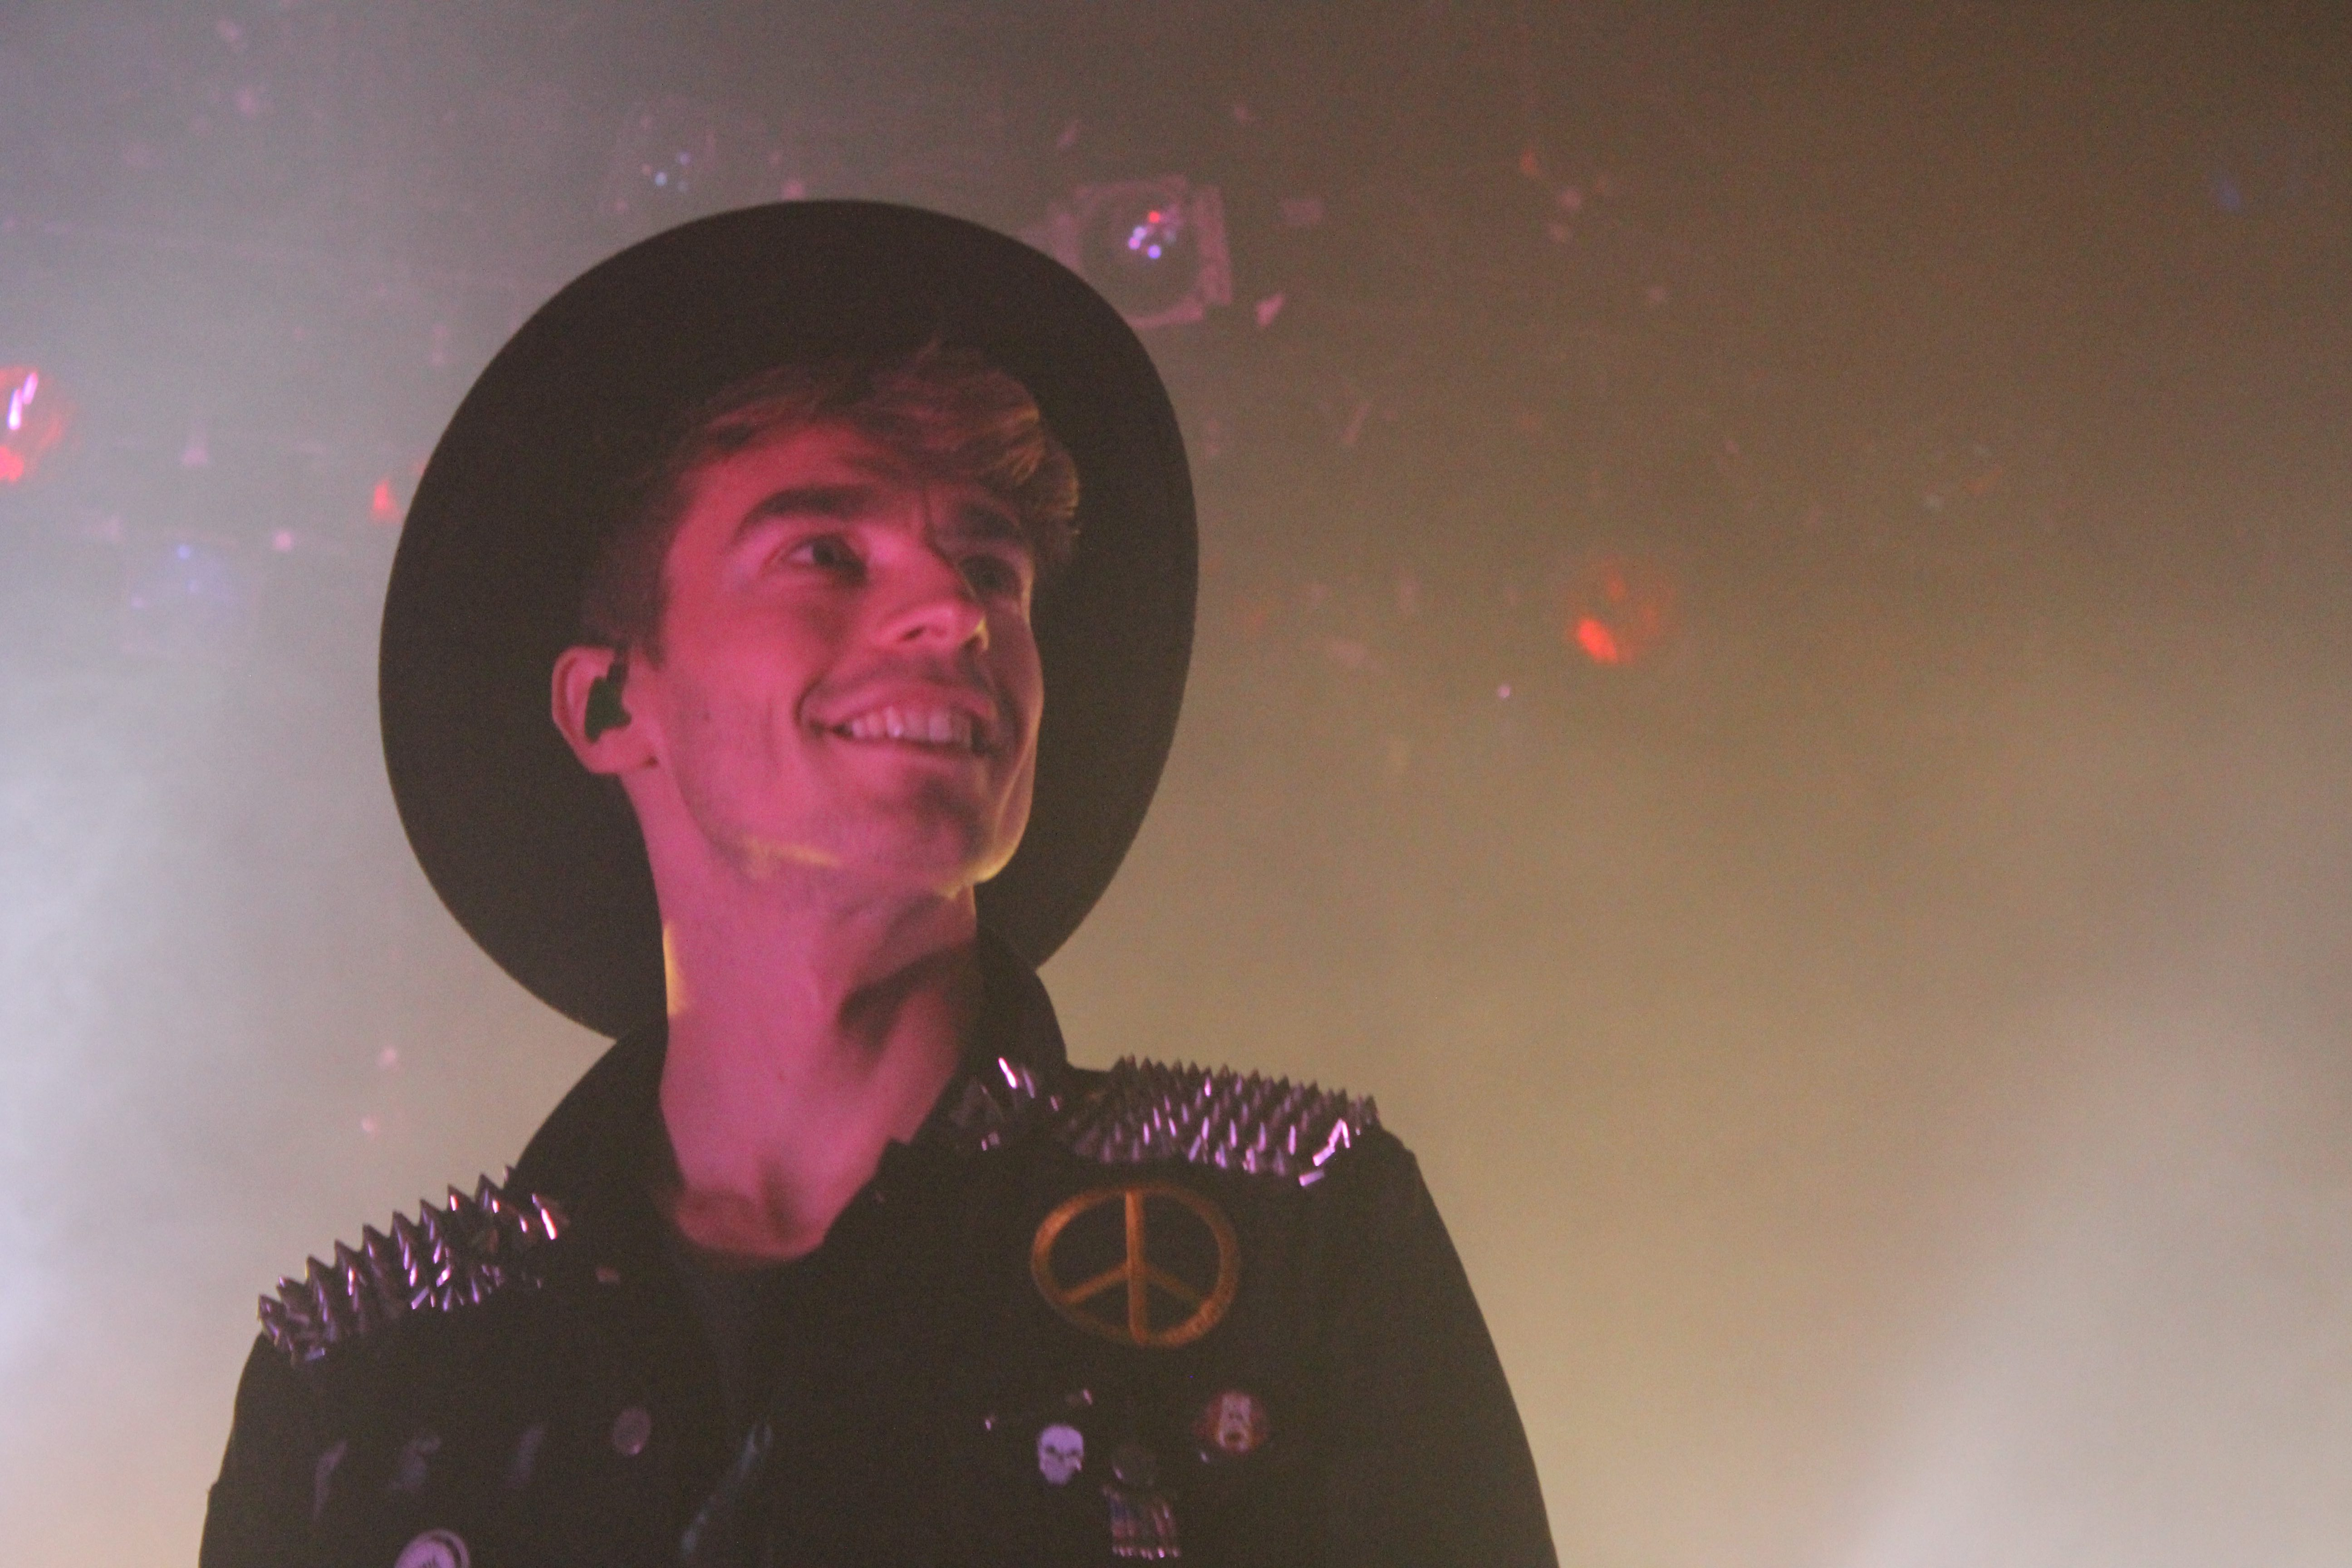 New Politics' singer David Boyd dons a glowing smile. The band's sincerity and excitement are infectious.